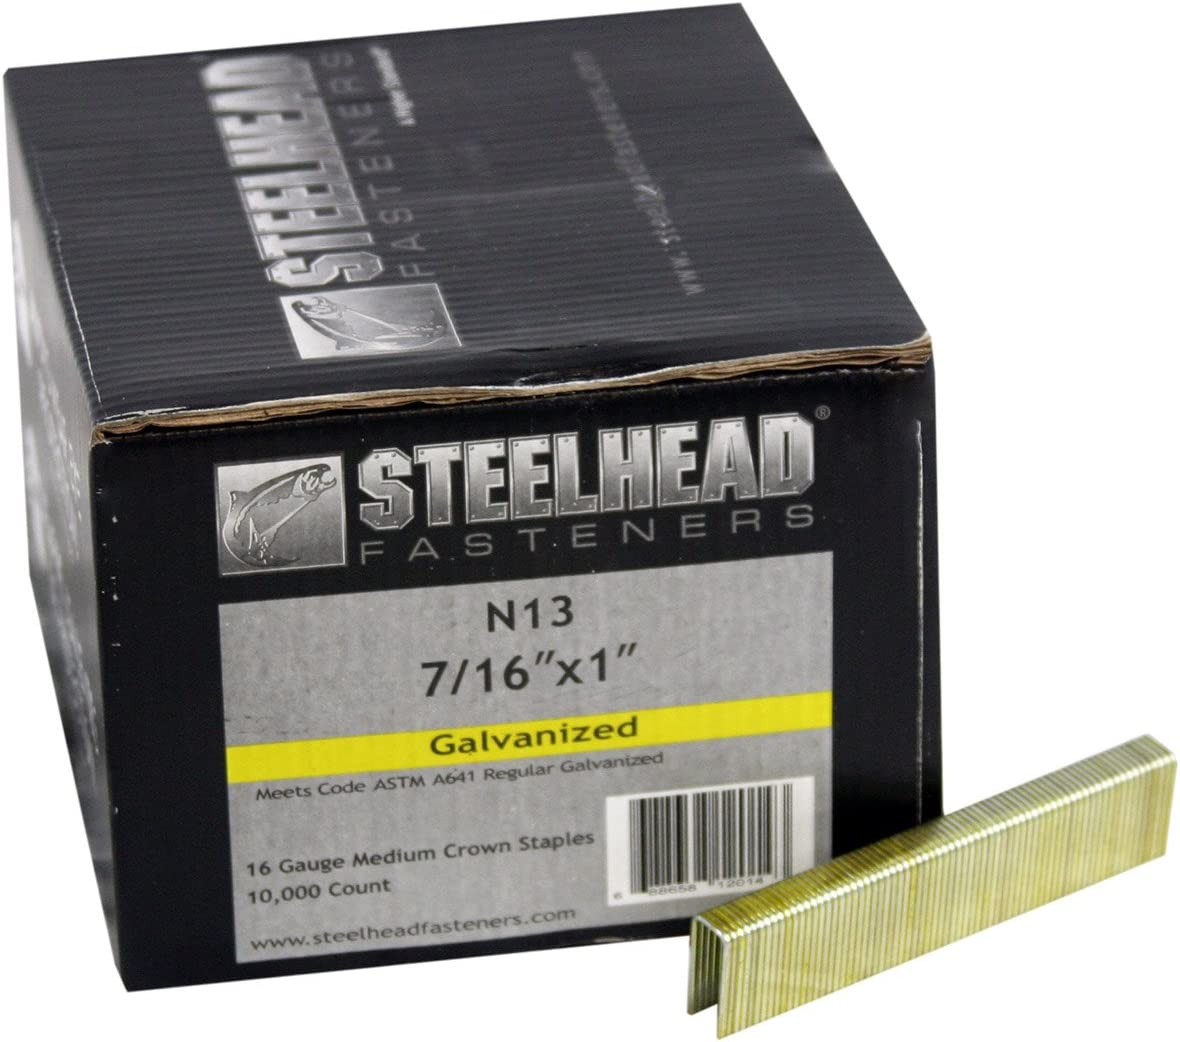 16-Gauge 1 leg 10,000-Pack Steelhead N13 Galvanized Staples 7//16 Crown